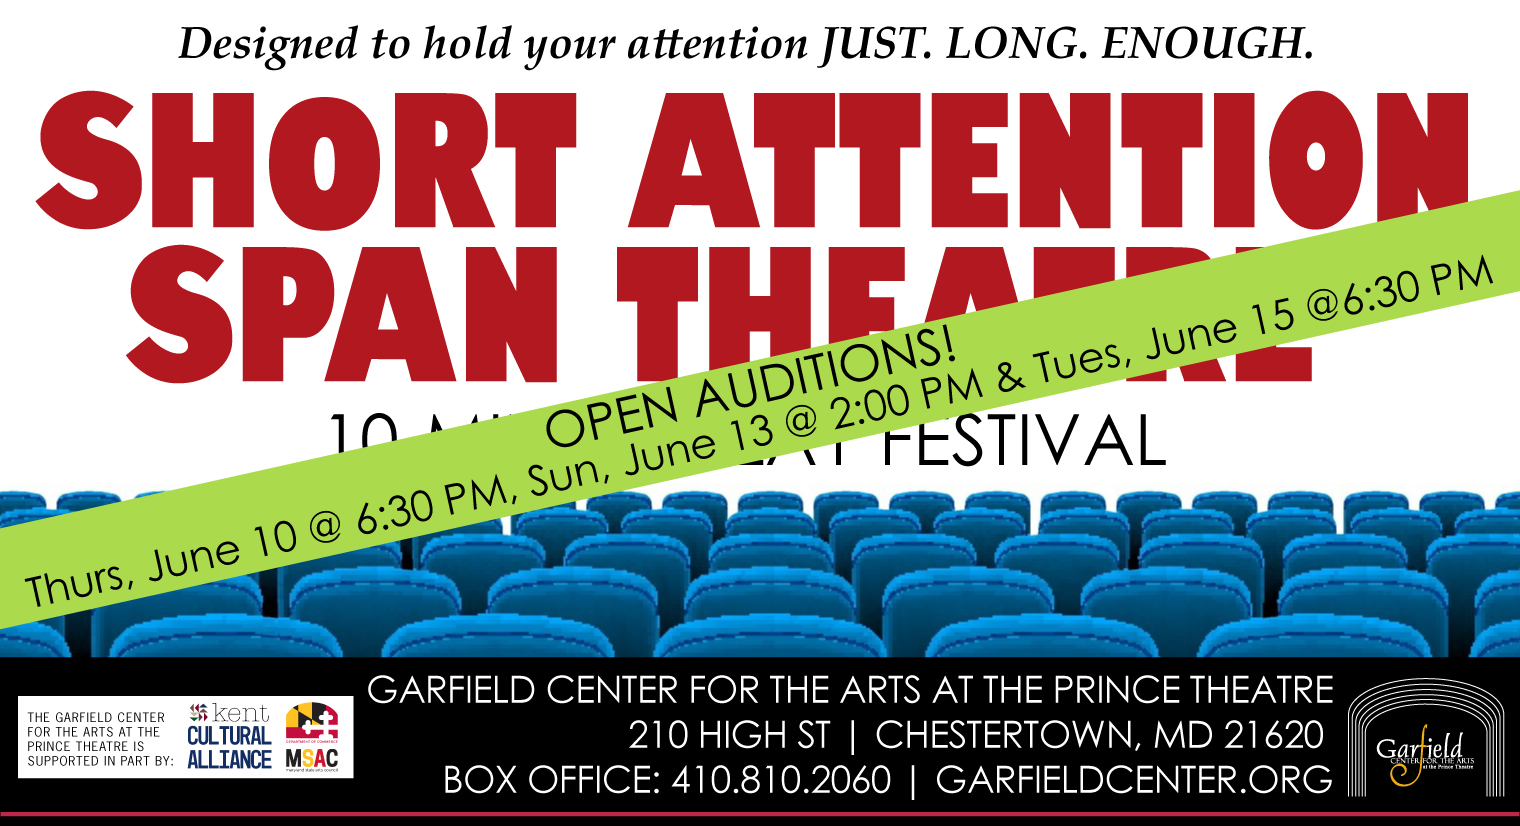 OPEN AUDITIONS for Short Attention Span Theatre